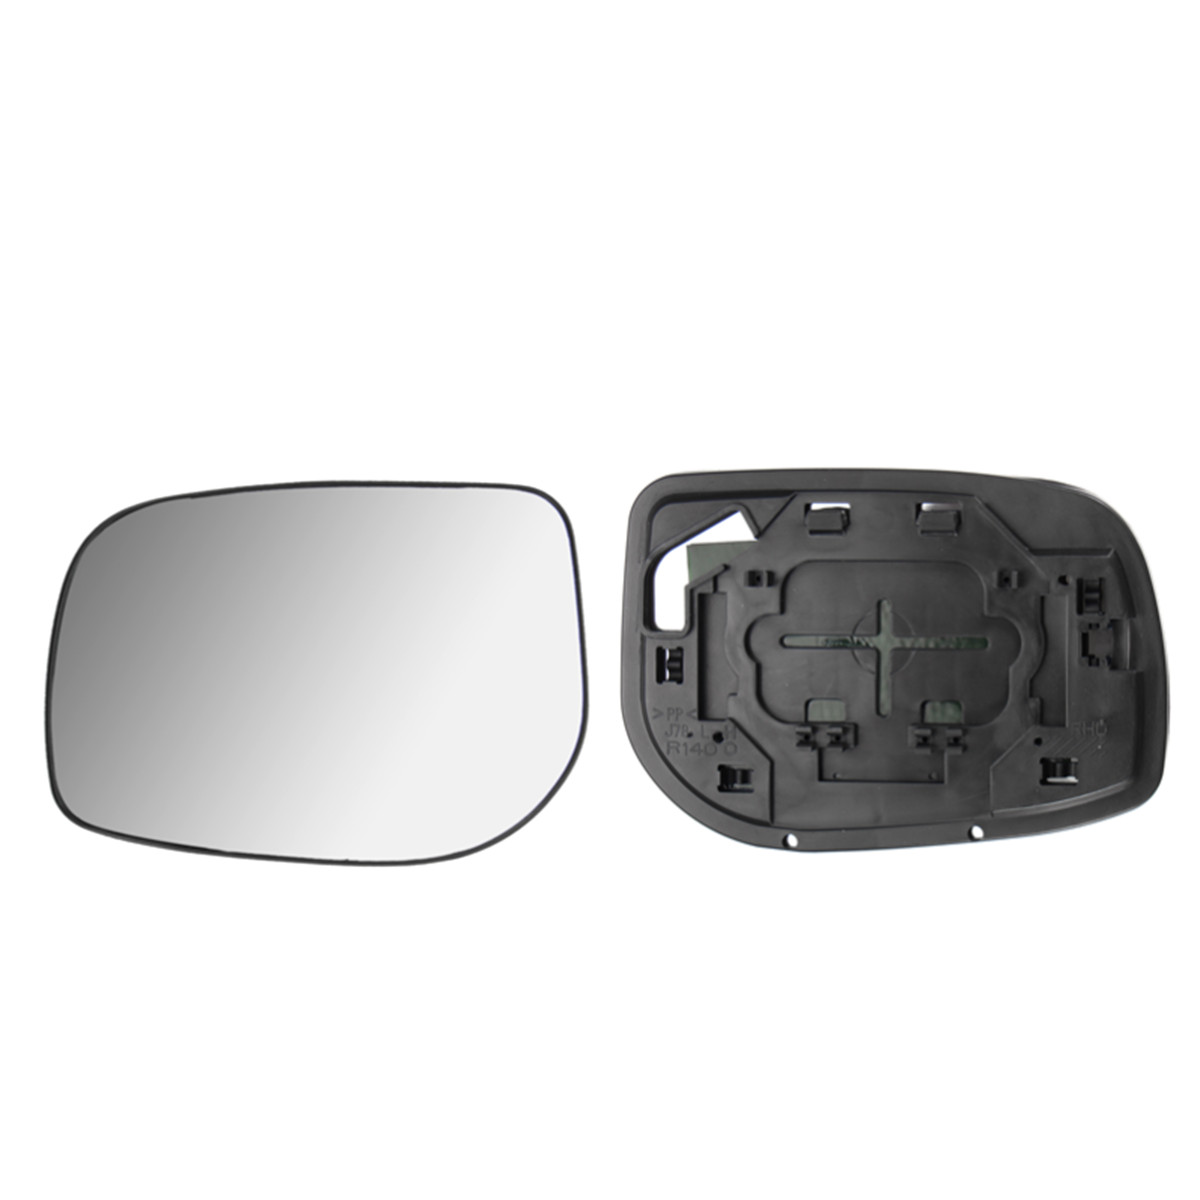 TOYOTA YARIS 1999-/>2005 DOOR//WING MIRROR GLASS SILVER,NONHEATED /& BASE,LEFT SIDE